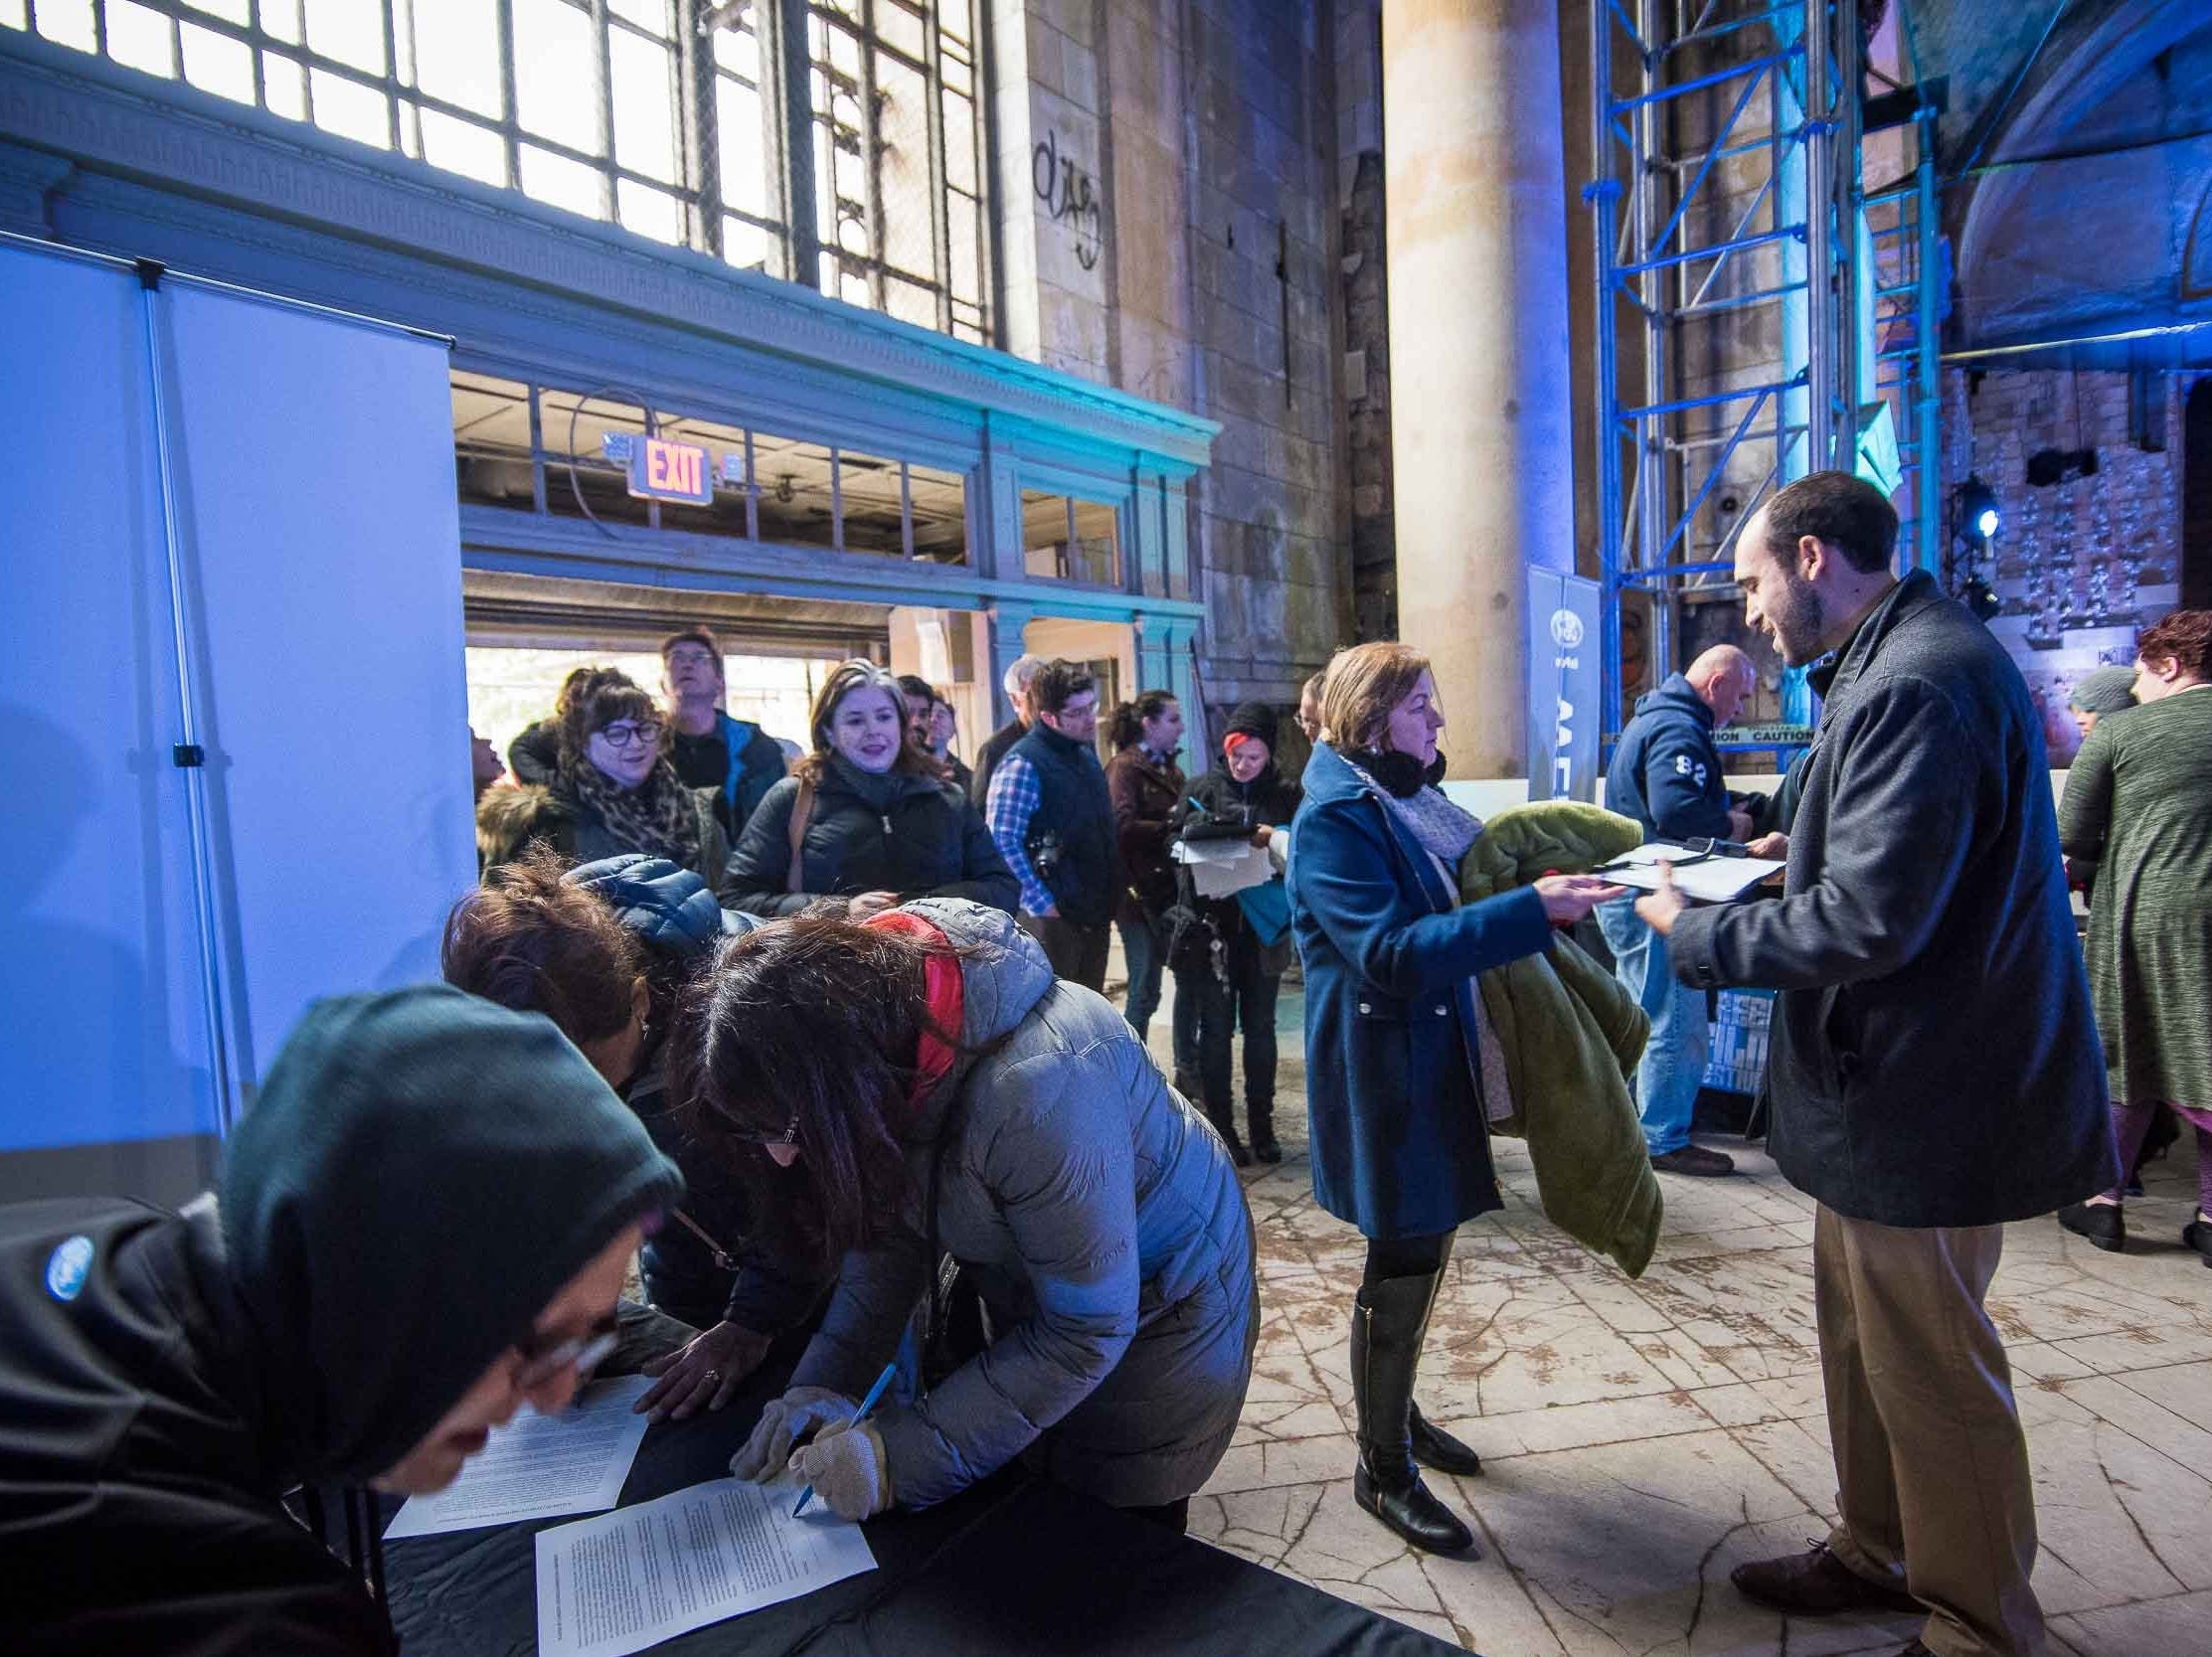 The Film Detroit: Comeback City 1st screening at the Michigan Central station as part of Freep Film Festival November 2, 2018.